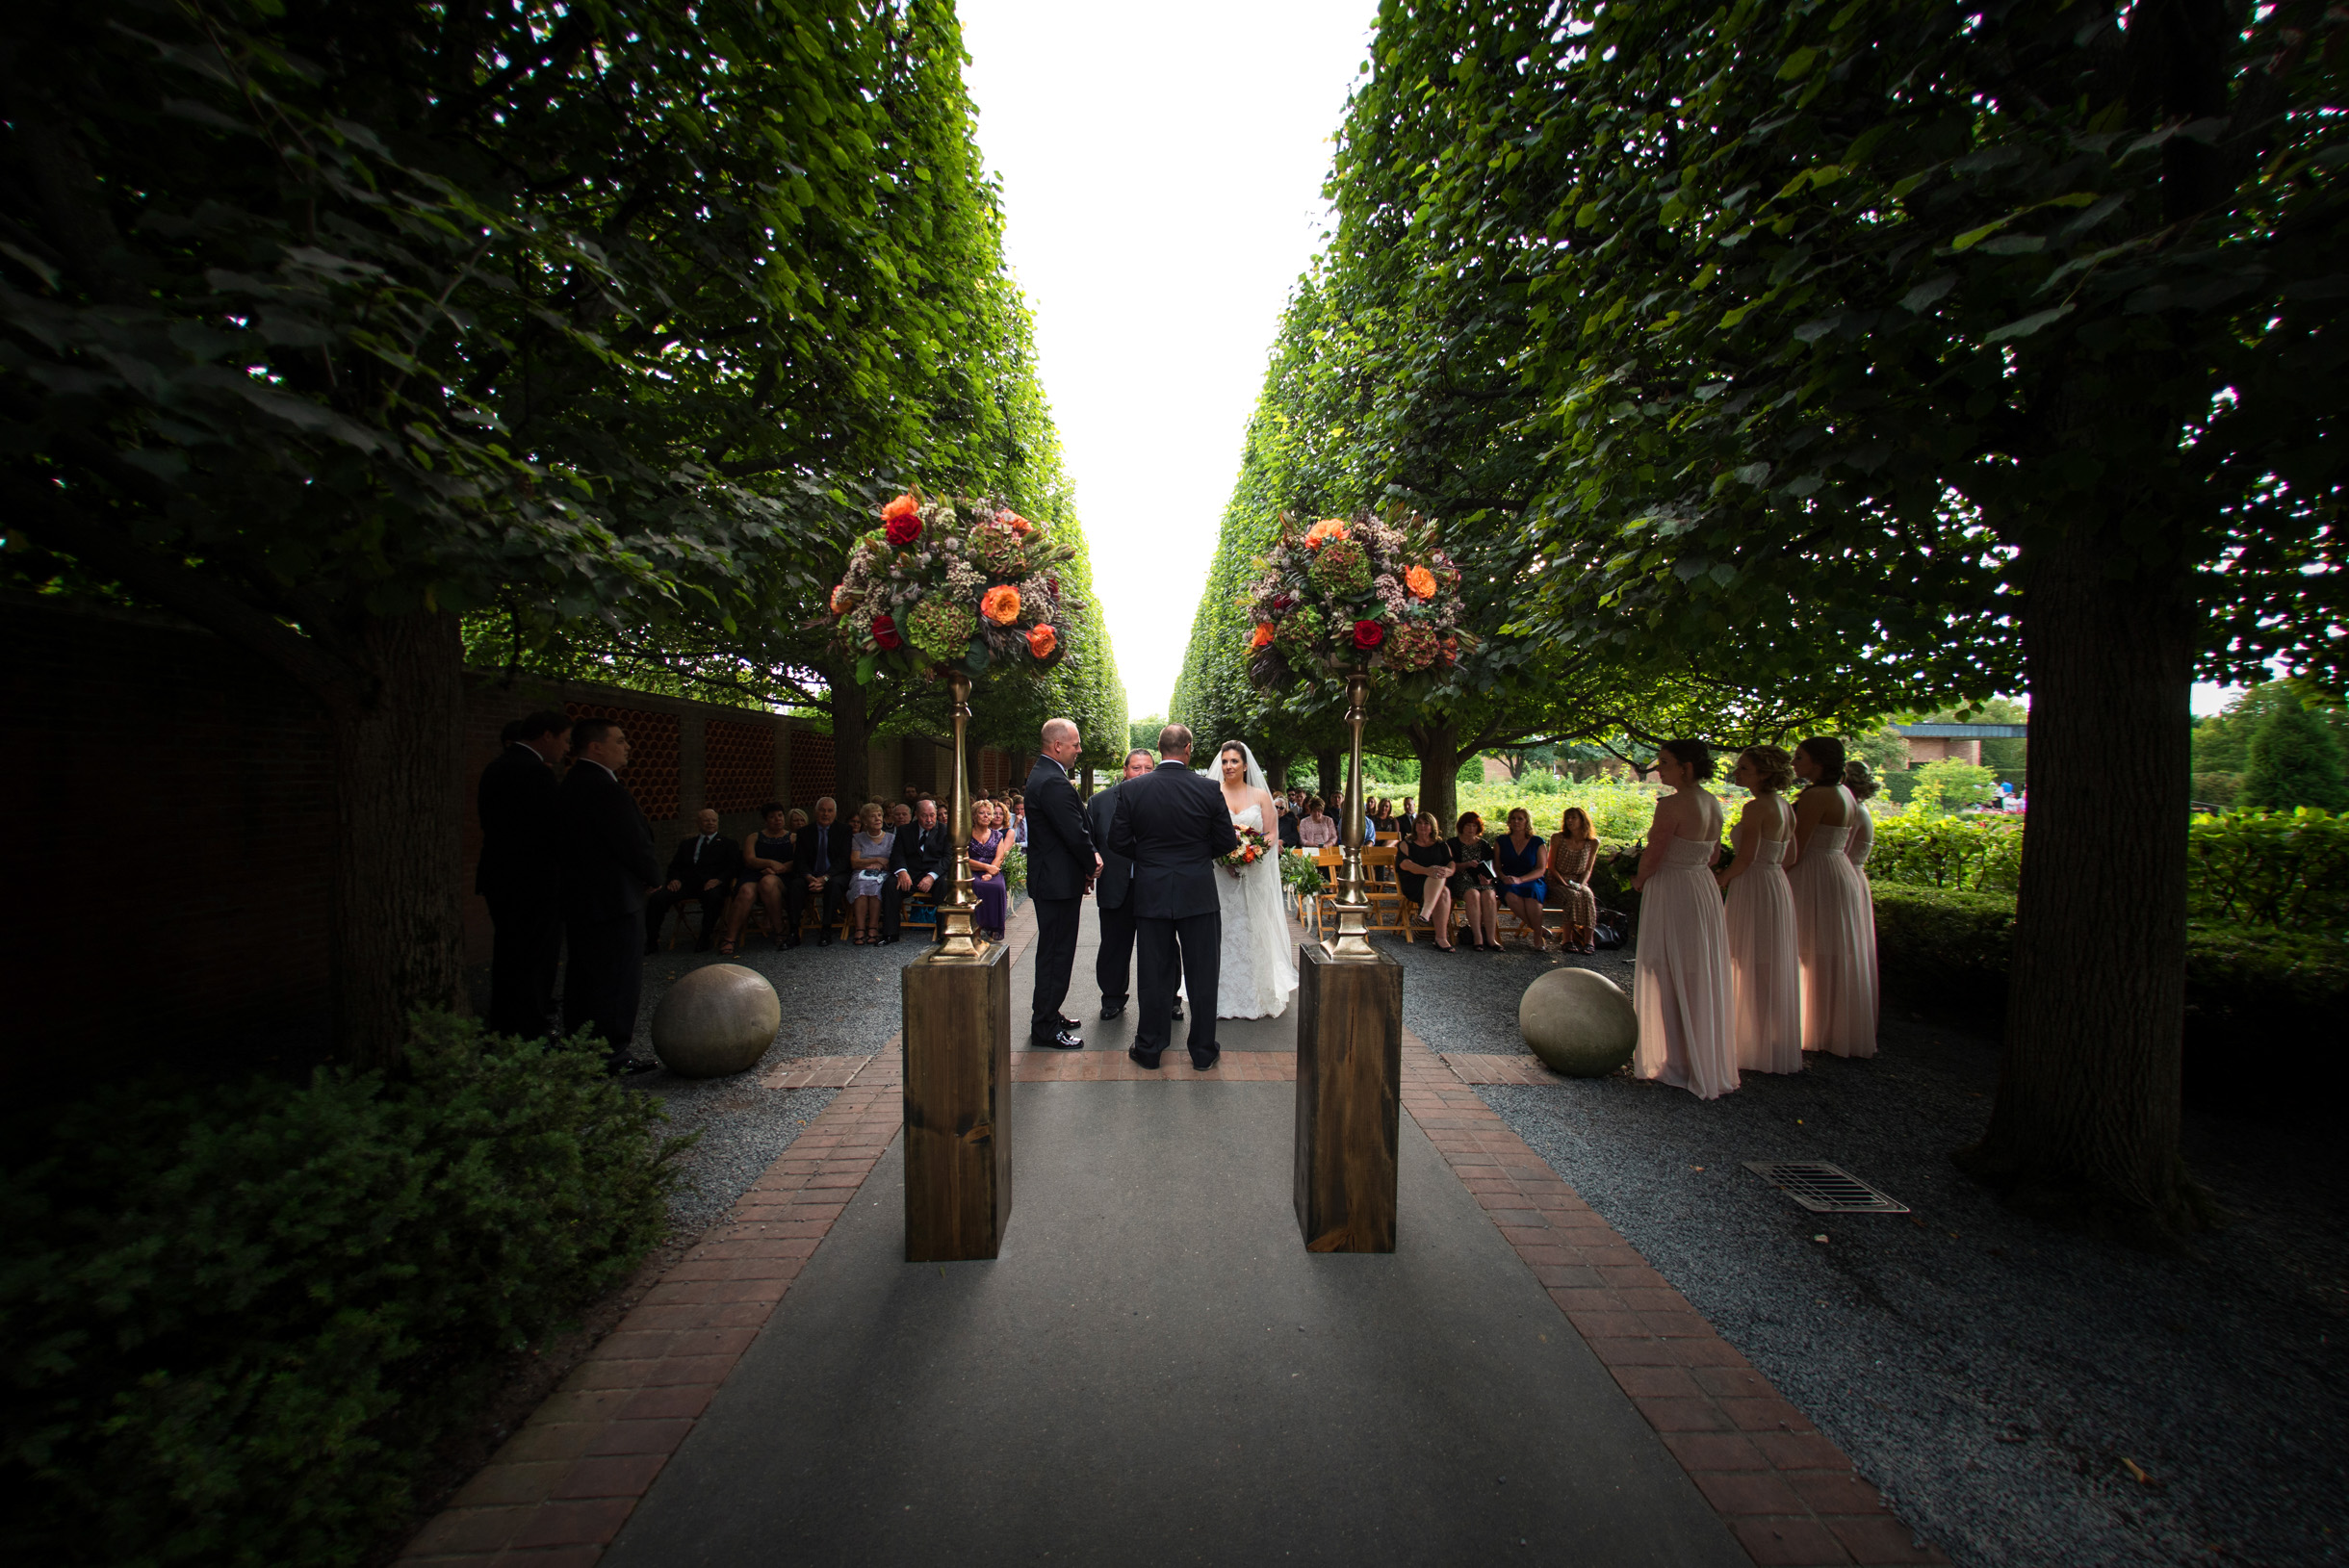 Wedding ceremony at the rose terrace of the chicago botanic garden